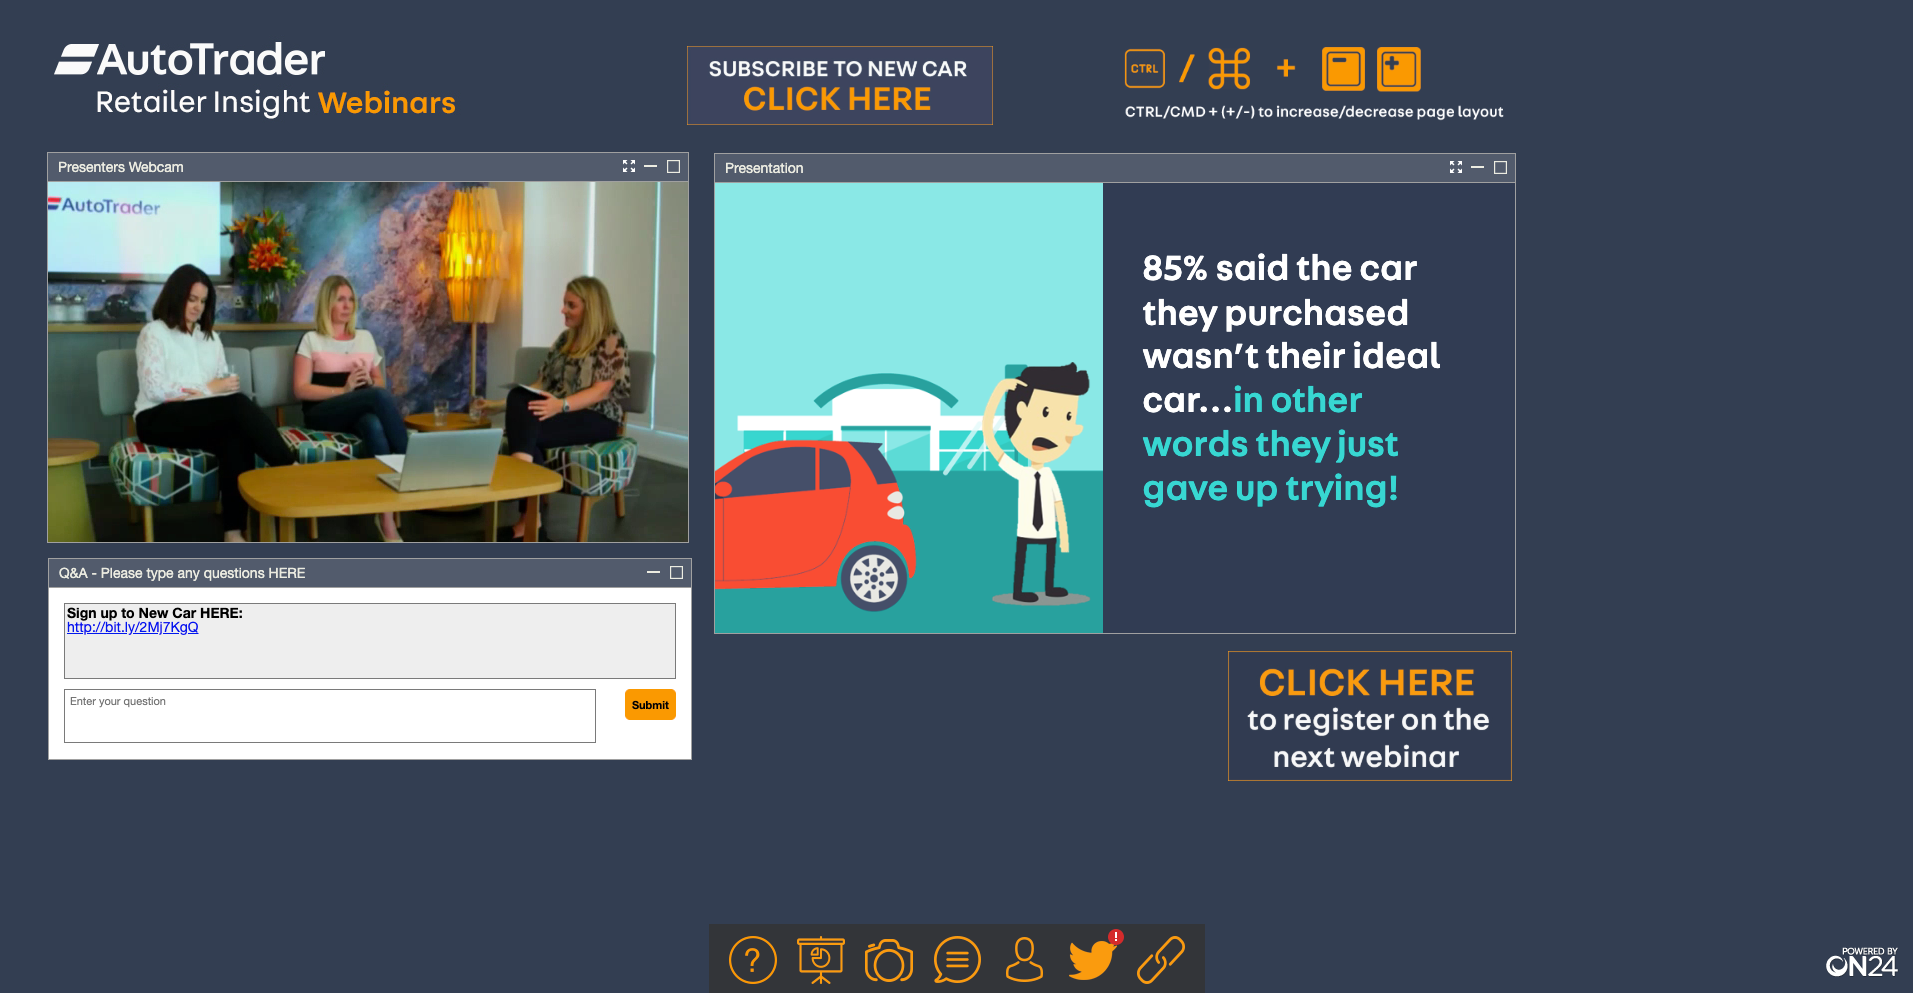 ON24 Demo - Autotrader UK webinar powered by ON24